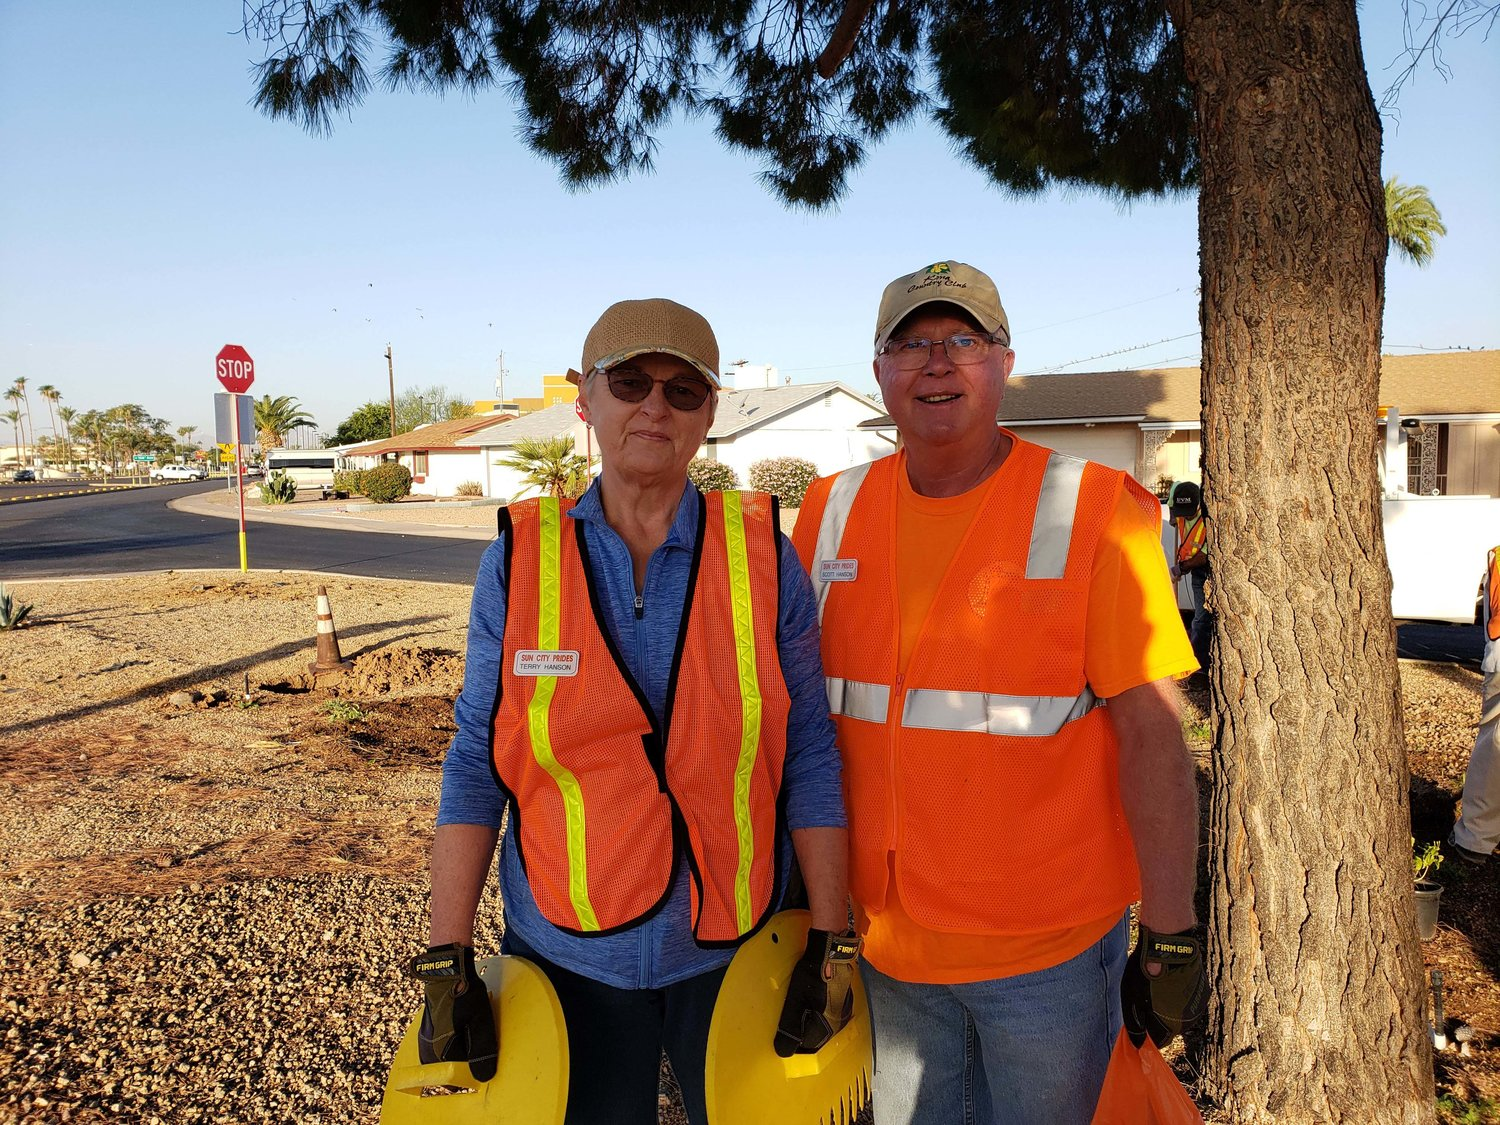 PRIDES volunteers, from left, Terry and Scott Hanson were part of the work detail at PRIDES Park at 105th and Peoria avenues.